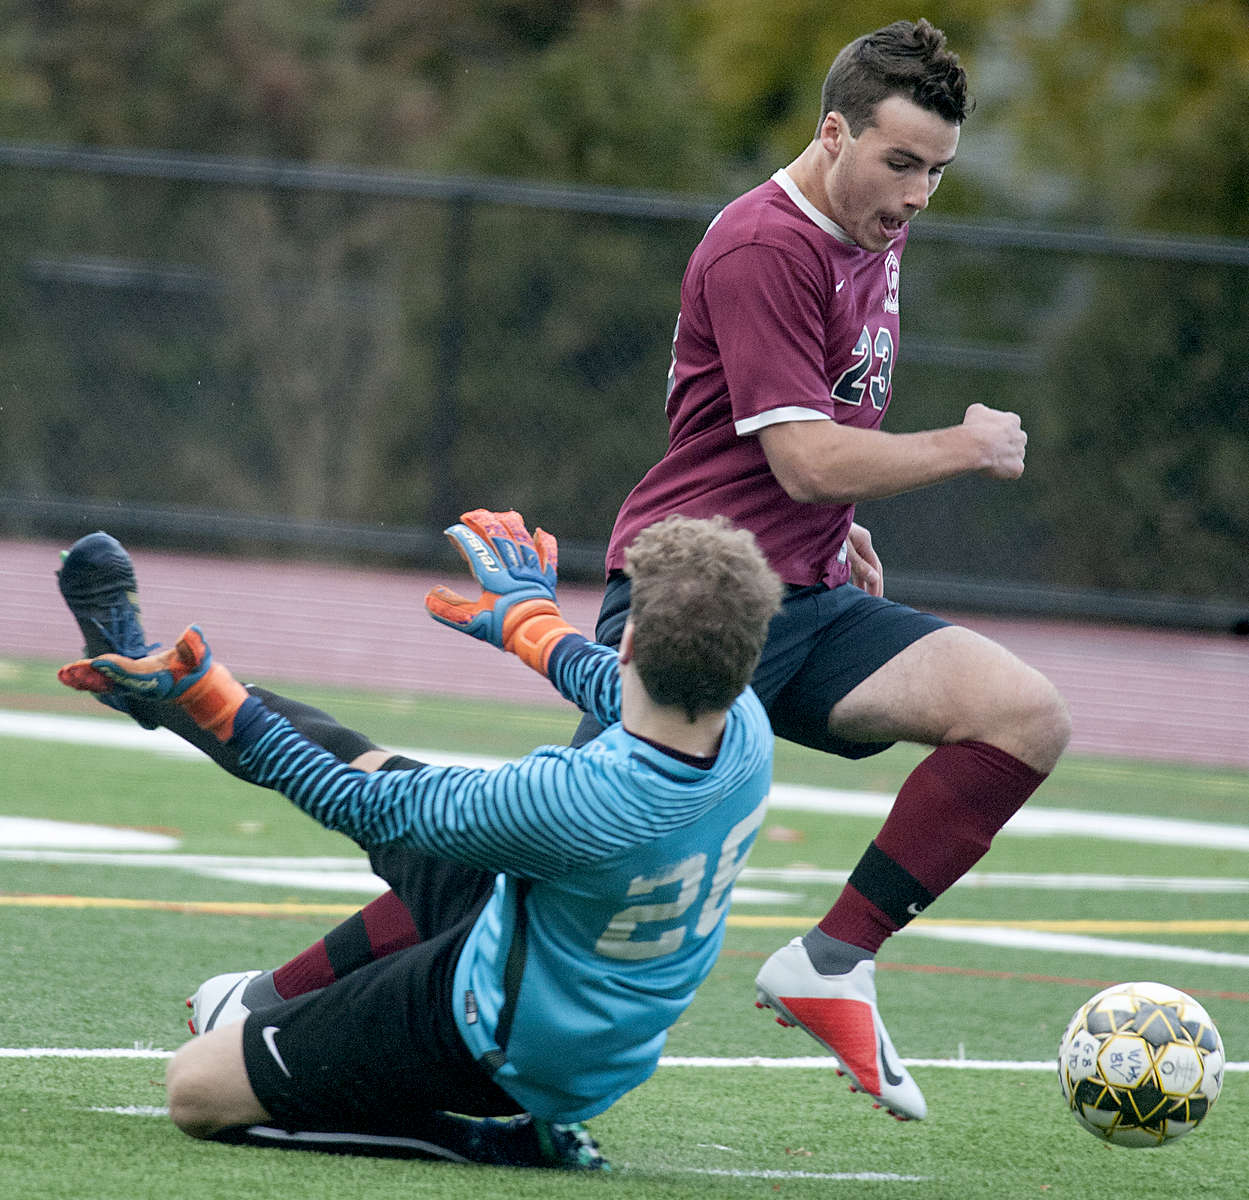 10/29/18-- WESTBOROUGH--  Westborough captain Jake Hughes on his scoring play in the first half against Groton-Dunstable Monday.  ]Daily News and Wicked Local Staff Photo/Art Illman]